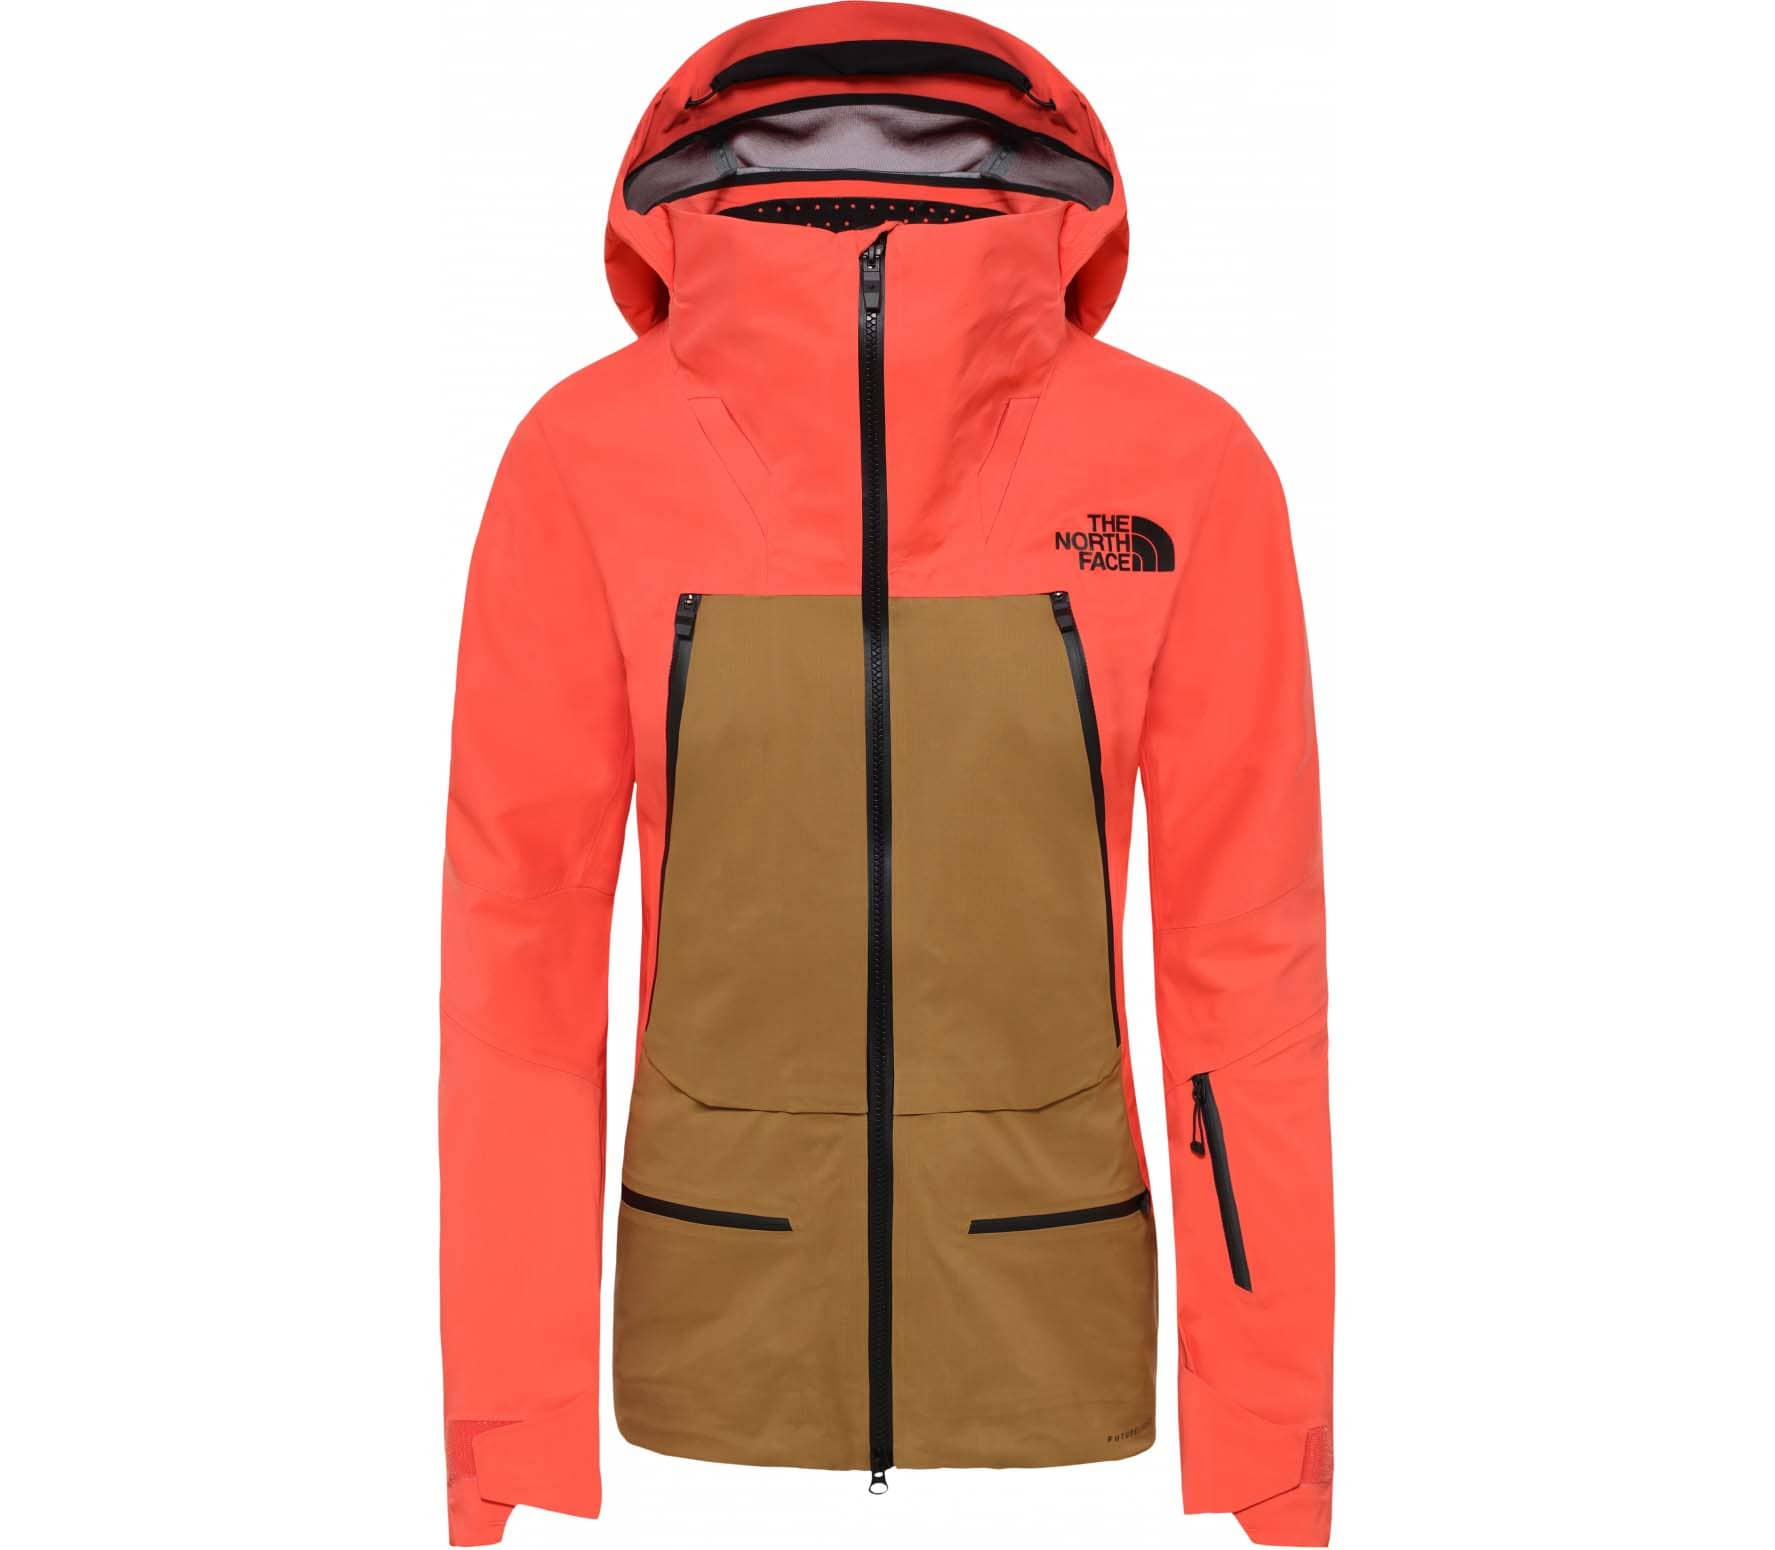 The North Face Purist Damen Skijacke (braun orange) 423,90 €